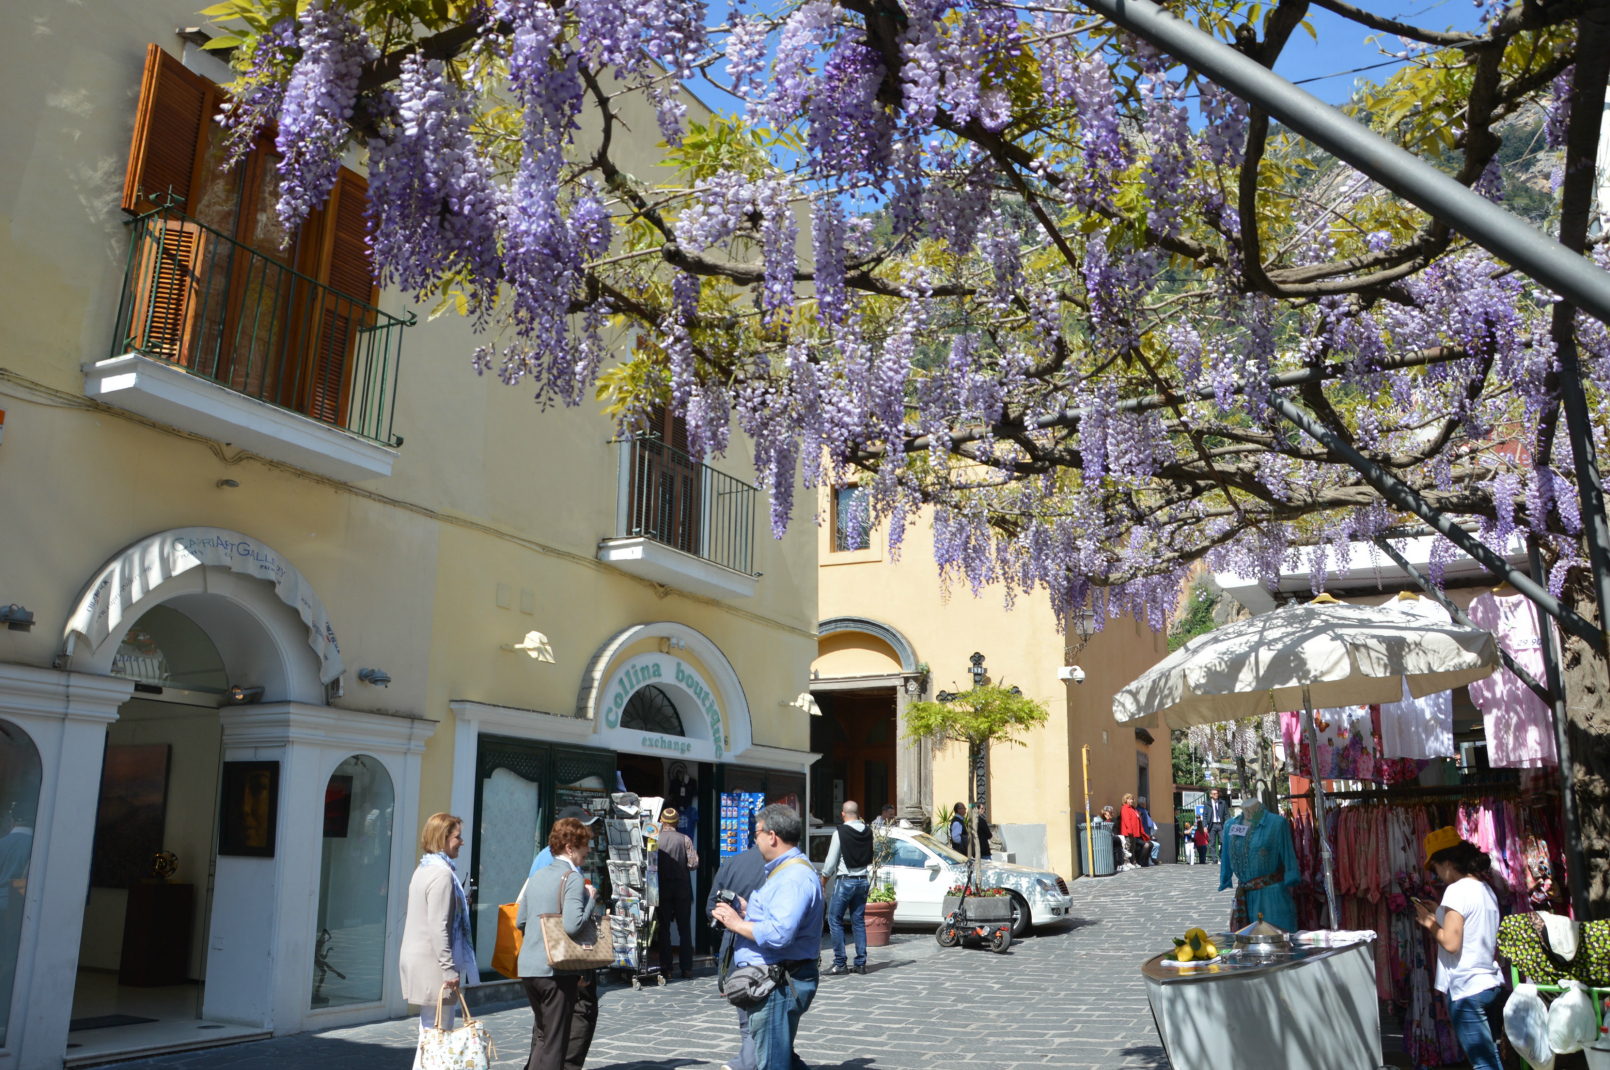 Wisteria in Positano - Spring on the Amalfi Coast